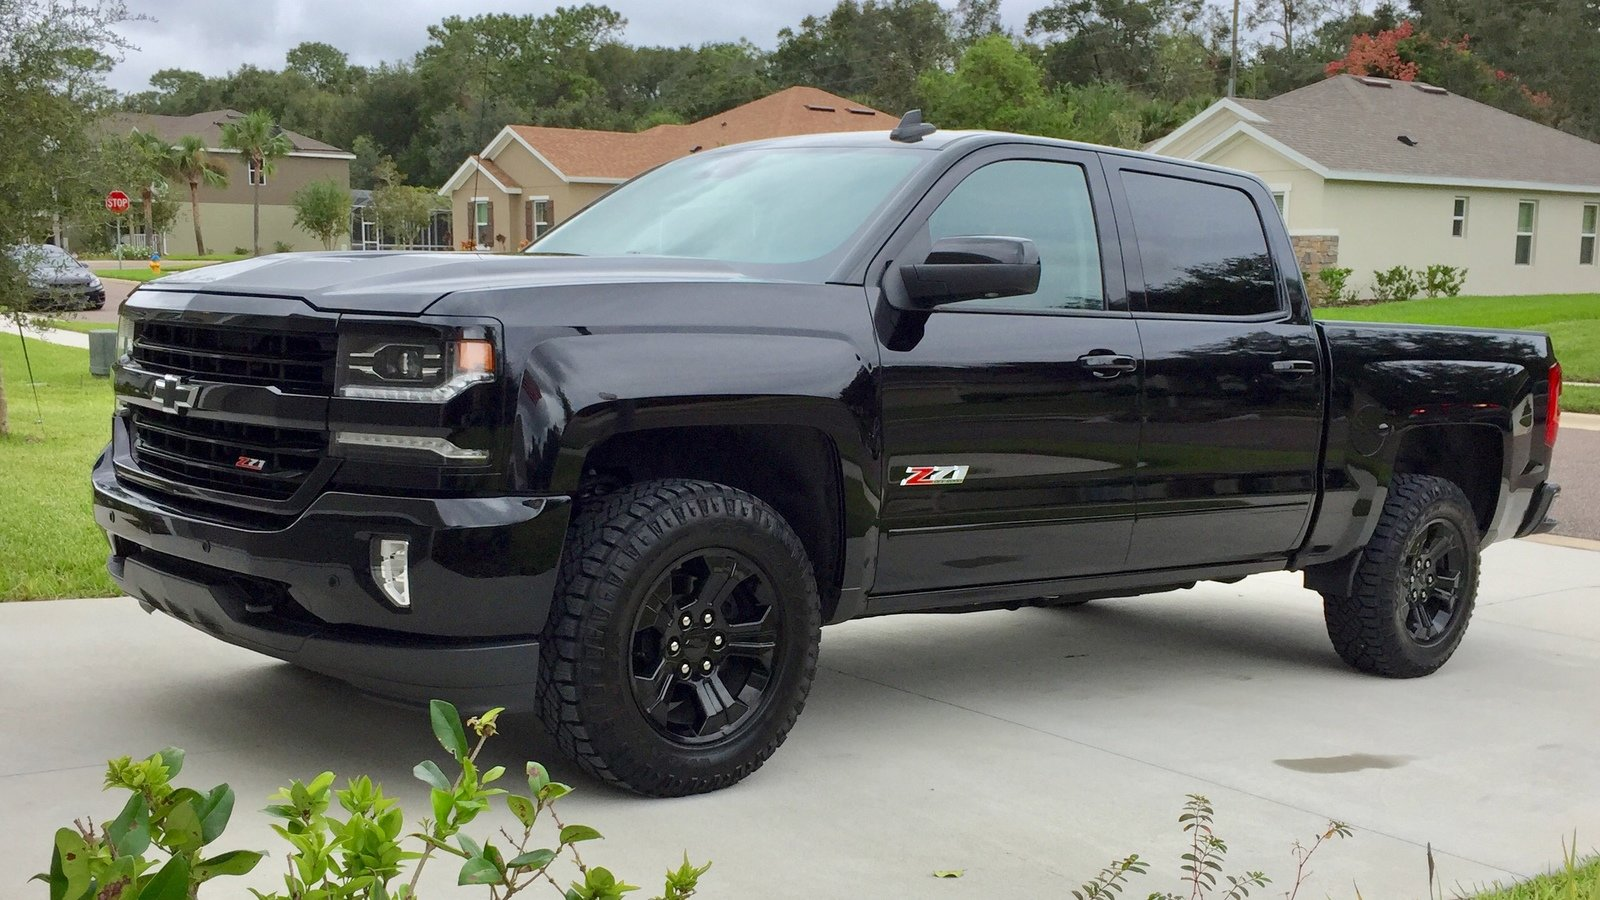 Chevrolet Silverado Reviews, Specs & Prices - Top Speed